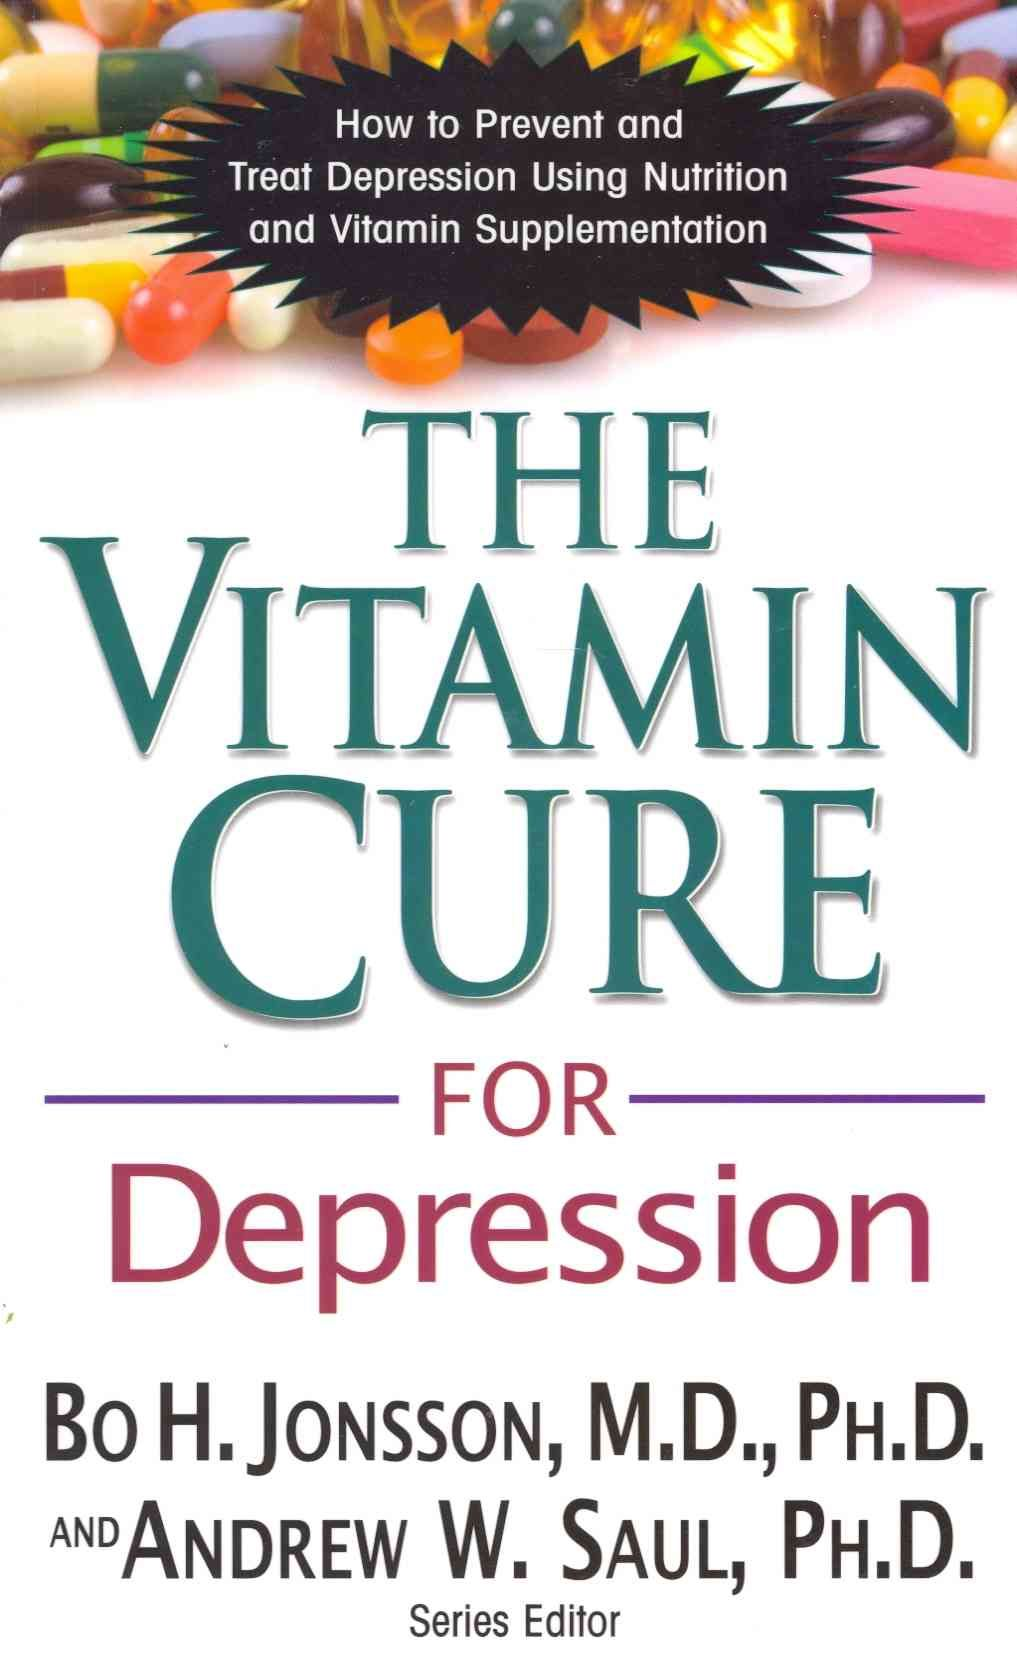 vitamin cure for depression: how to prevent and treat depression